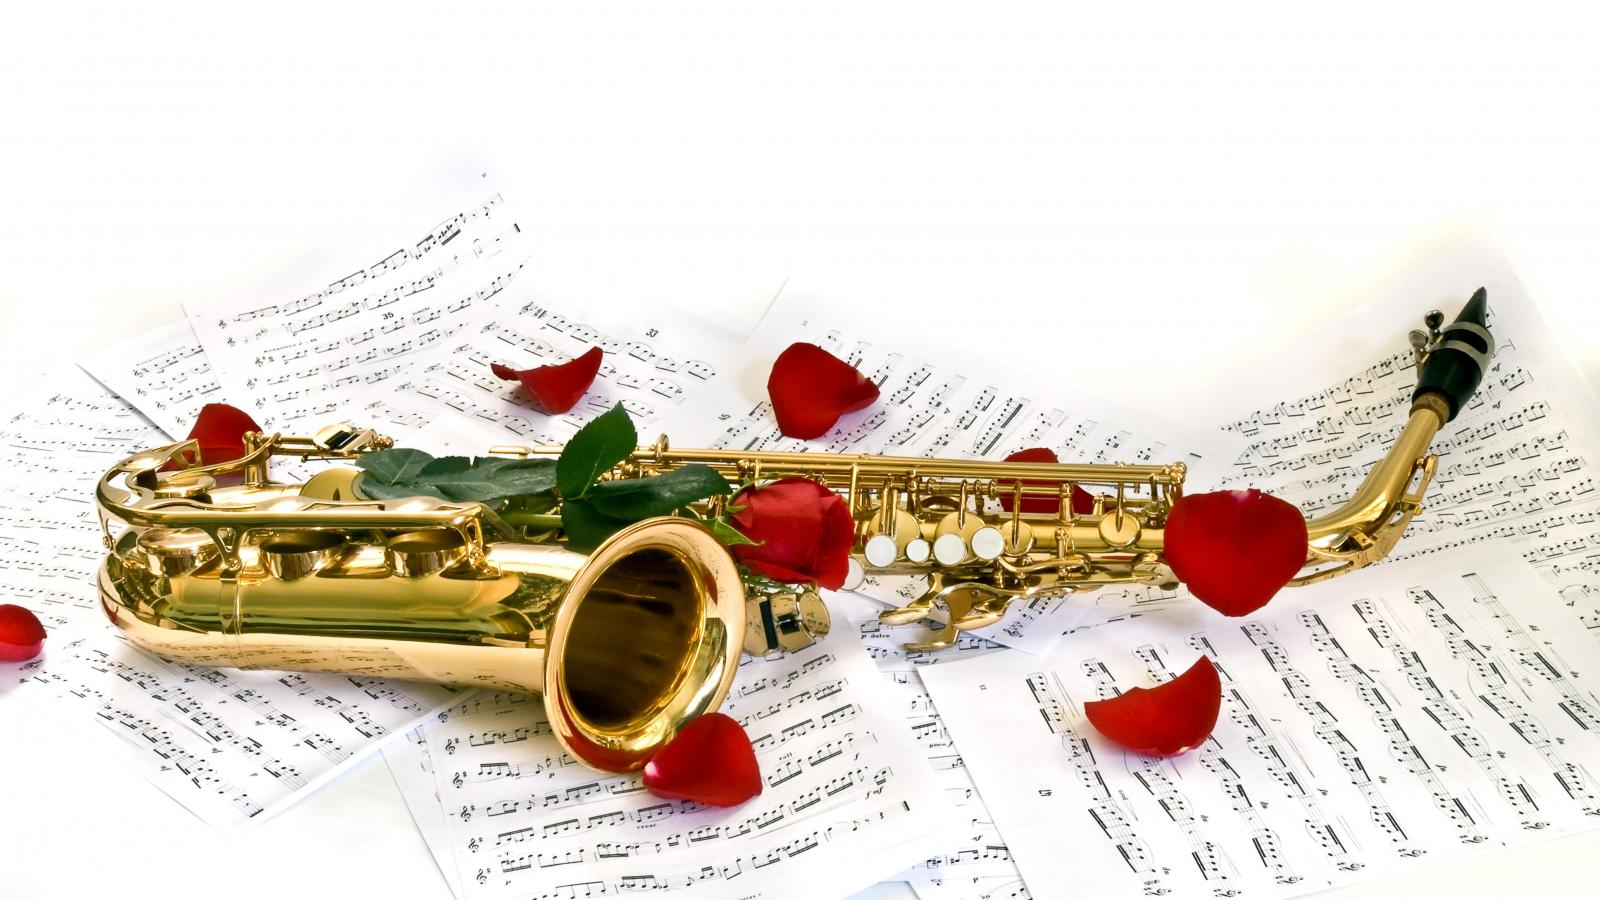 Saxophone - 27 Good PC Background Wallpapers Collection